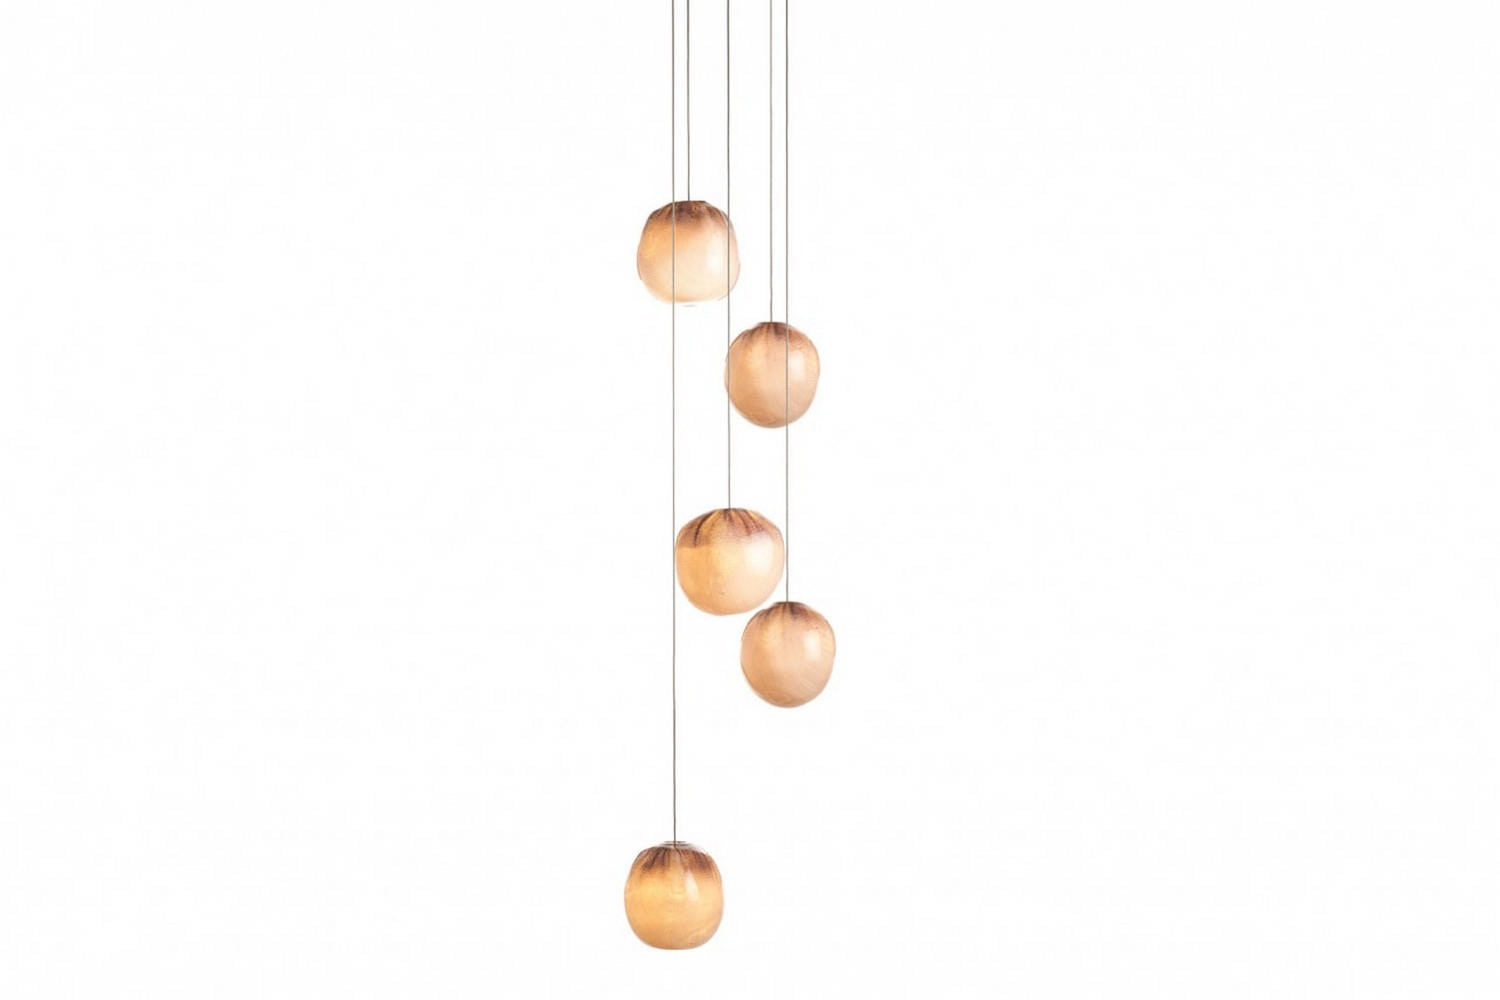 84.5 Suspension Lamp by Omer Arbel for Bocci